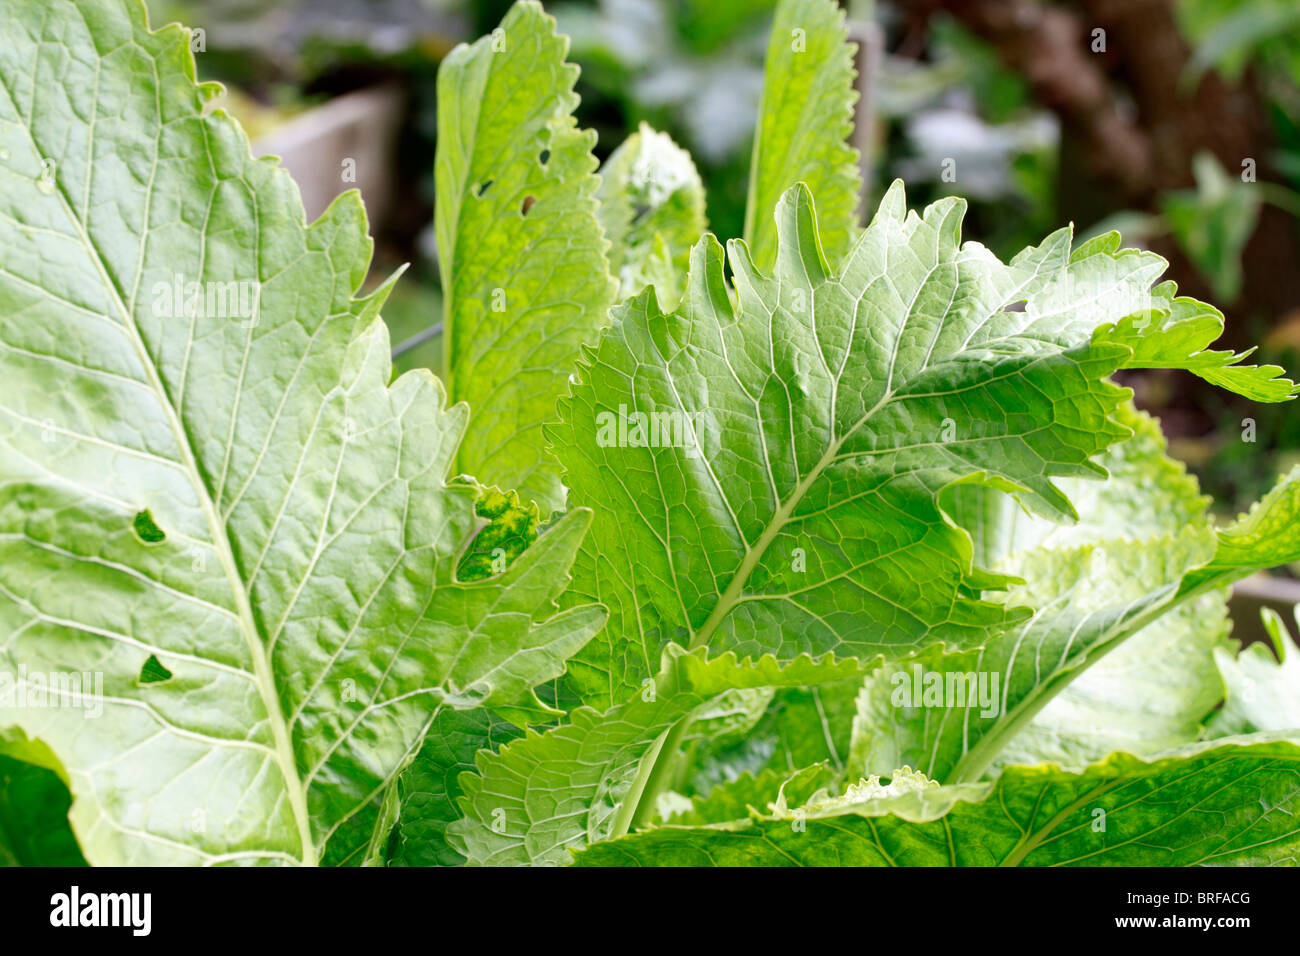 Horseradish, (Armoracia rusticana, syn. Cochlearia armoracia) is a perennial plant of the Brassicaceae family. Grown - Stock Image